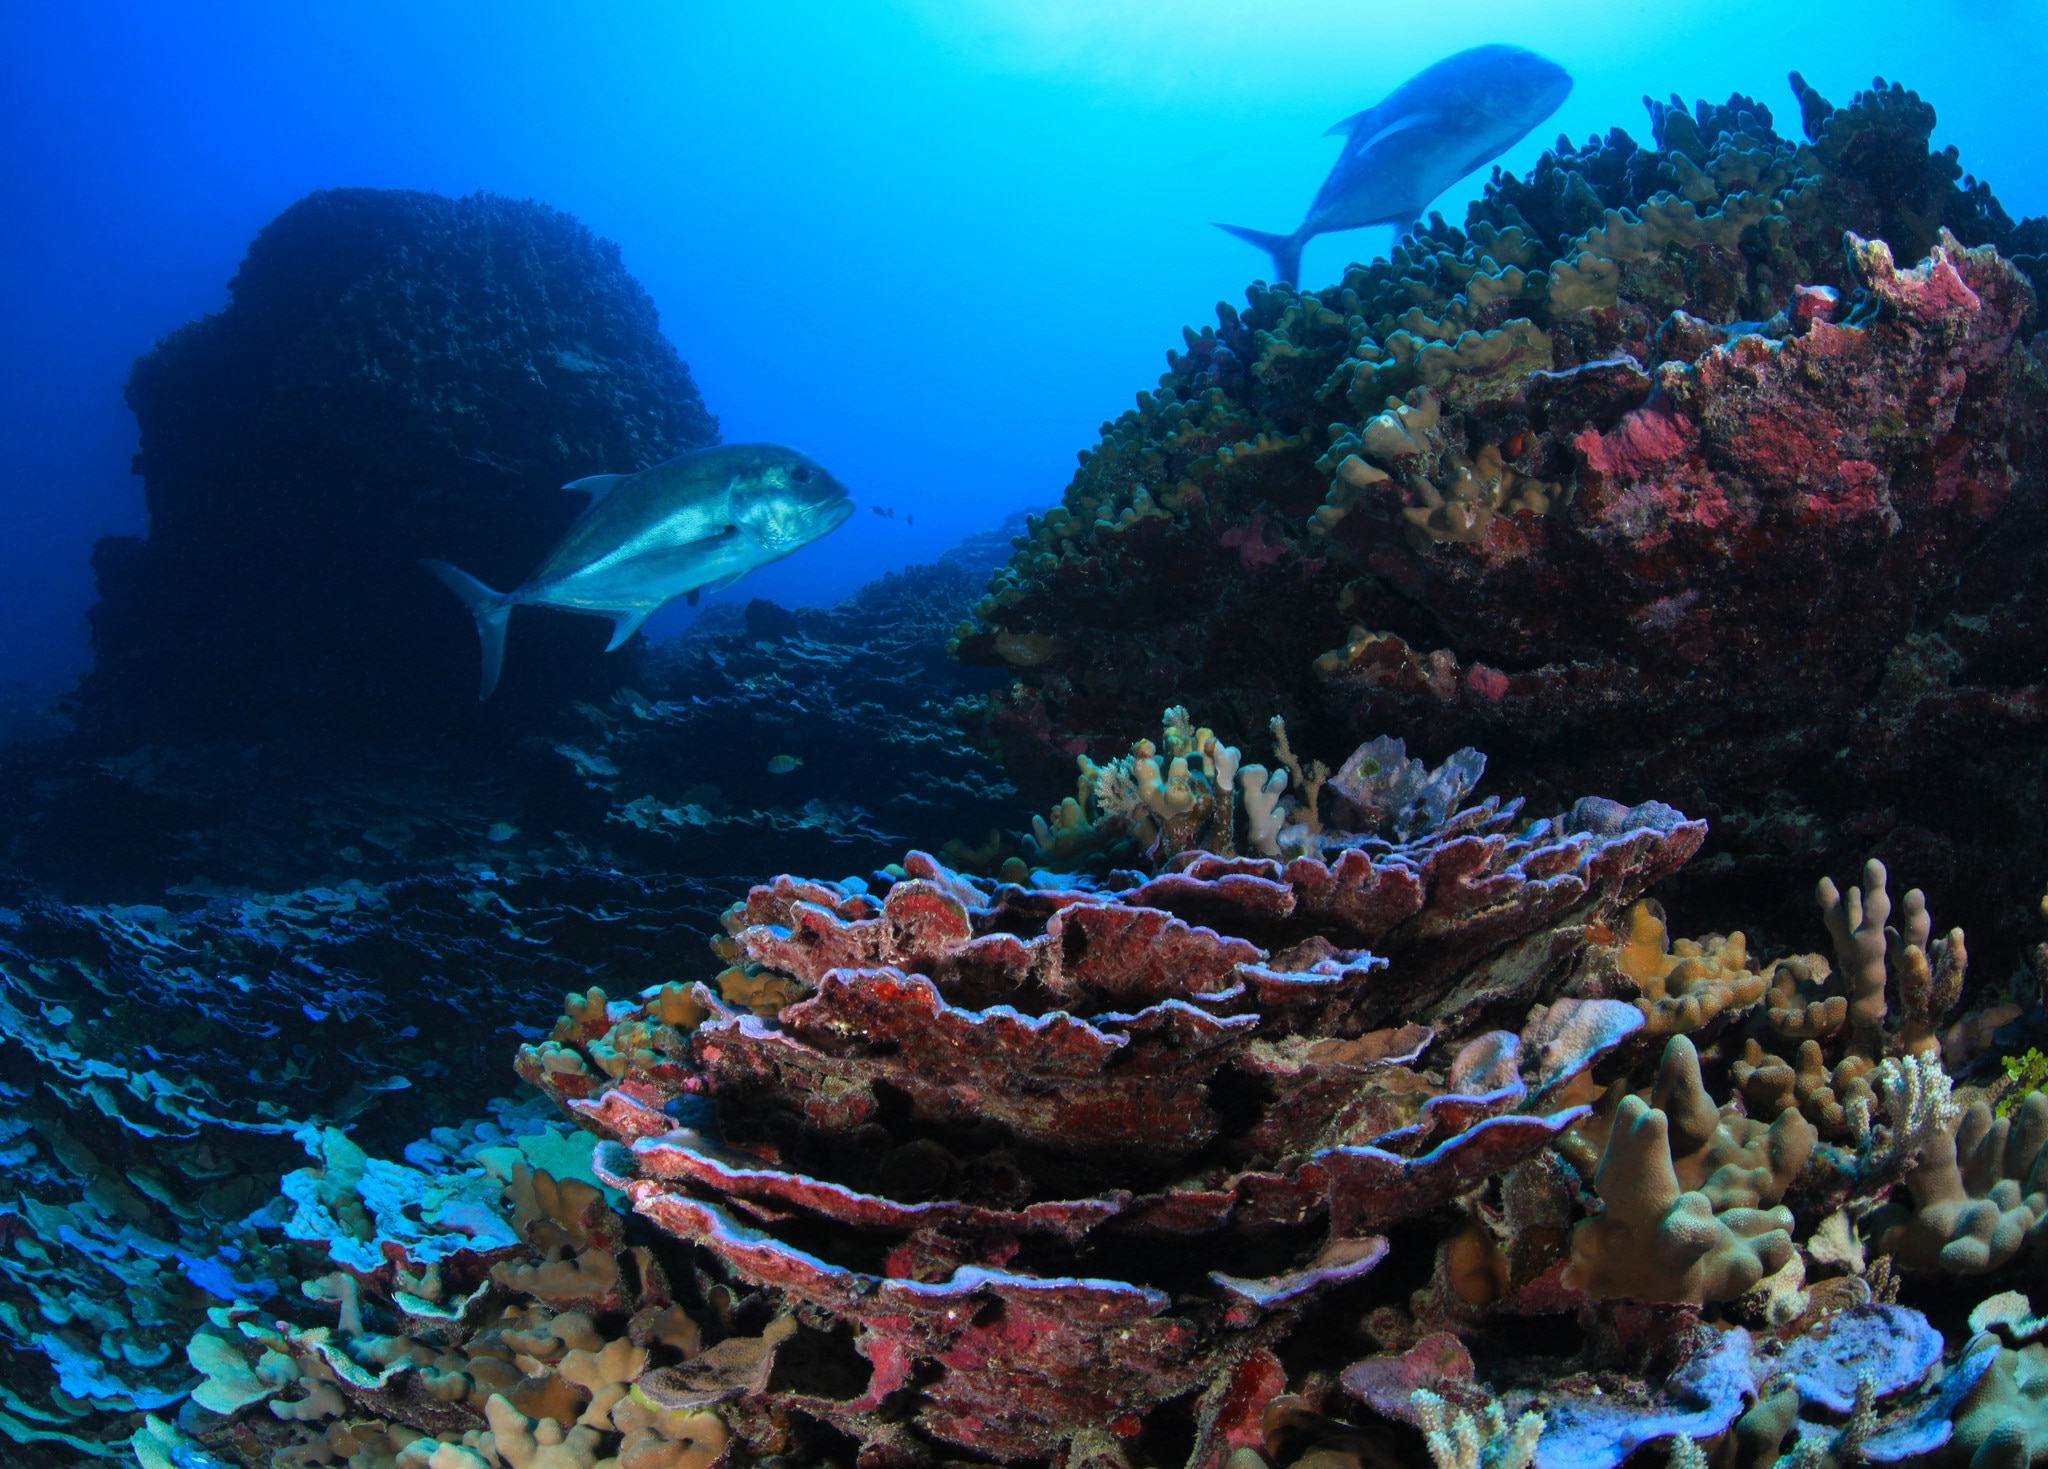 Coral and Ulua found in the Papahānaumokuākea Marine National Monument. Coral reefs found in Papahānaumokuākea are home to over 7,000 marine species, one quarter of which are found only in the Hawaiian Archipelago. (Original source and more information: National Oceanic and Atmospheric Administration National Ocean Service Image Gallery)